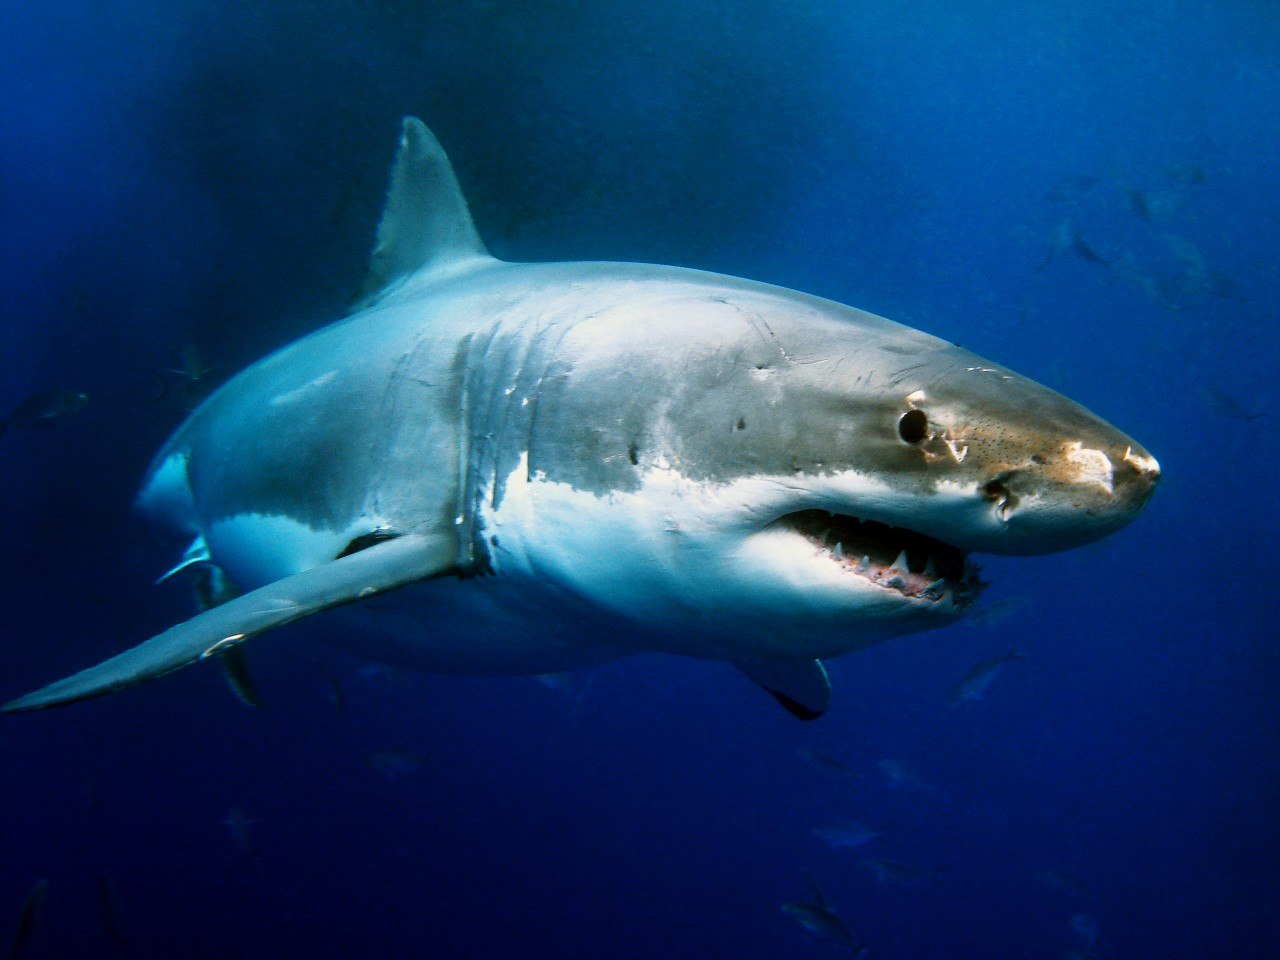 not everything s a shark attack com scientists ask the media to choose their words more carefully in order to minimize exaggerated public fear